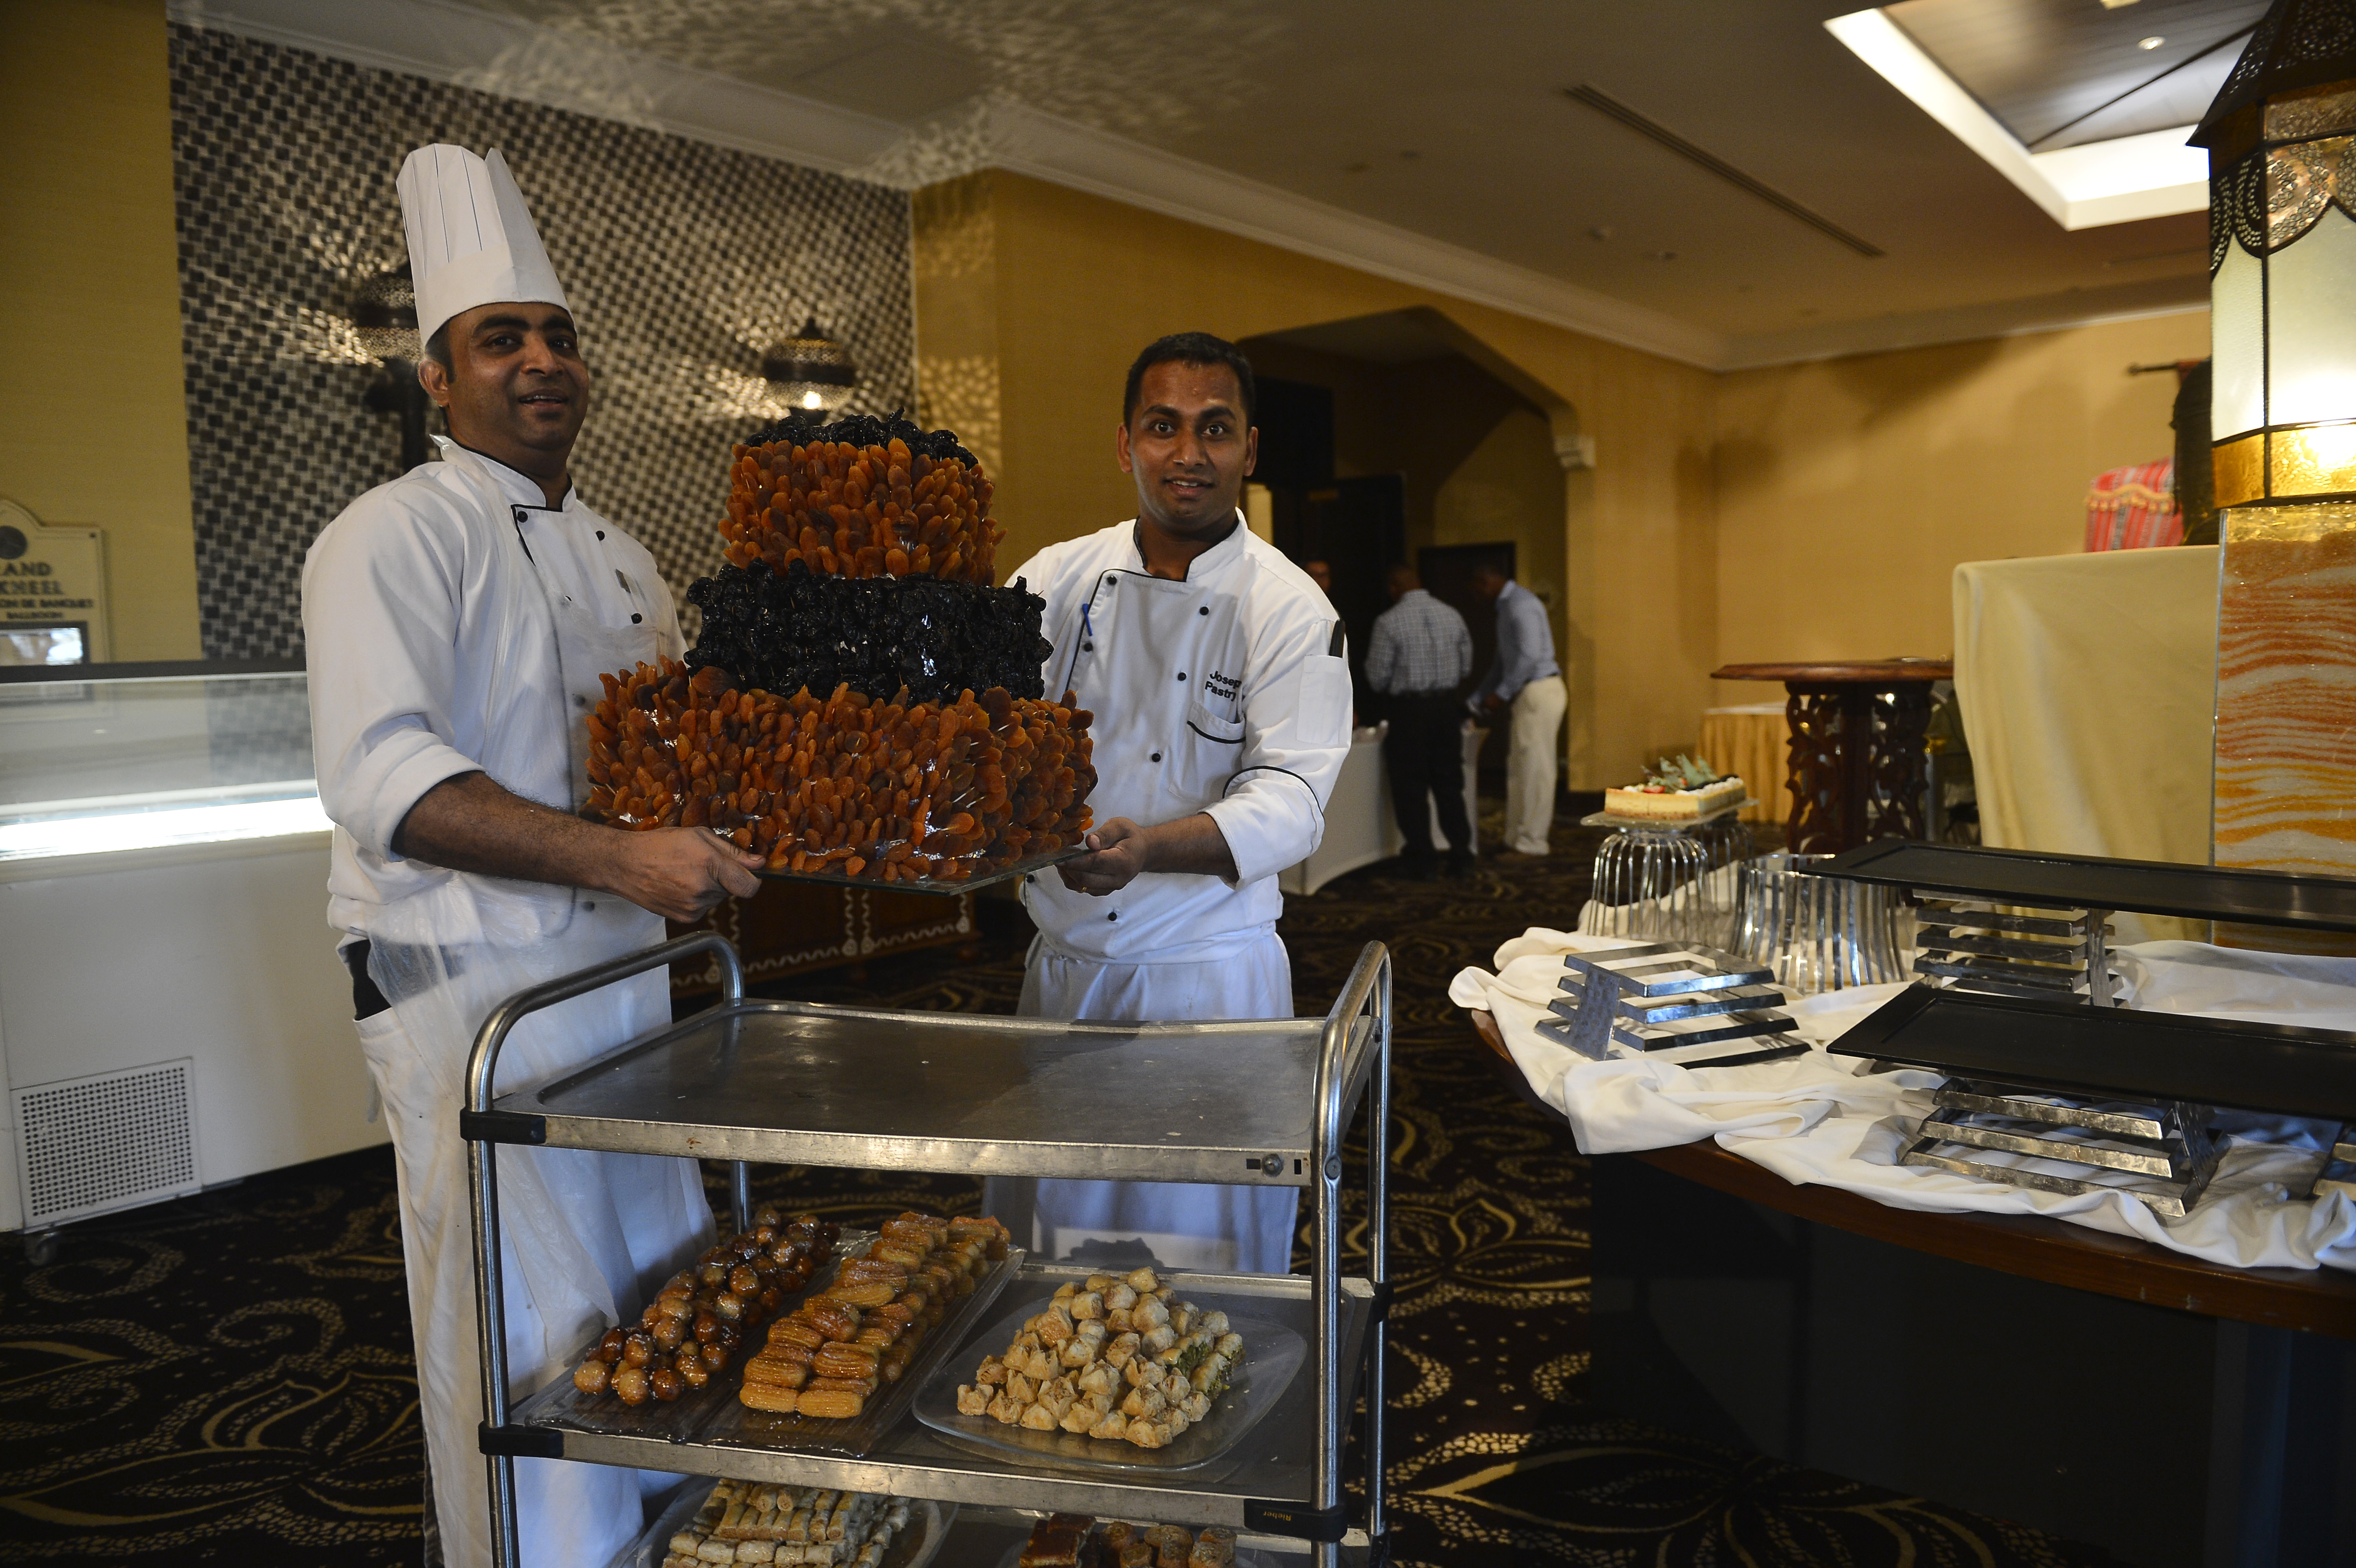 From left, Joseph Joy and Ratheesh Ravai, Kempinski Hotel pastry chefs, prepare to place a cake of dates on display for Combined Joint Task Force-Horn of Africa's Iftar dinner, June 29, 2015. CJTF-HOA hosts an annual Iftar, the fast-breaking meal during the Muslim religious observance of Ramadan, to honor partner nations. Dates are traditionally eaten first to break the fast. (U.S. Air Force photo by Senior Airman Nesha Humes)